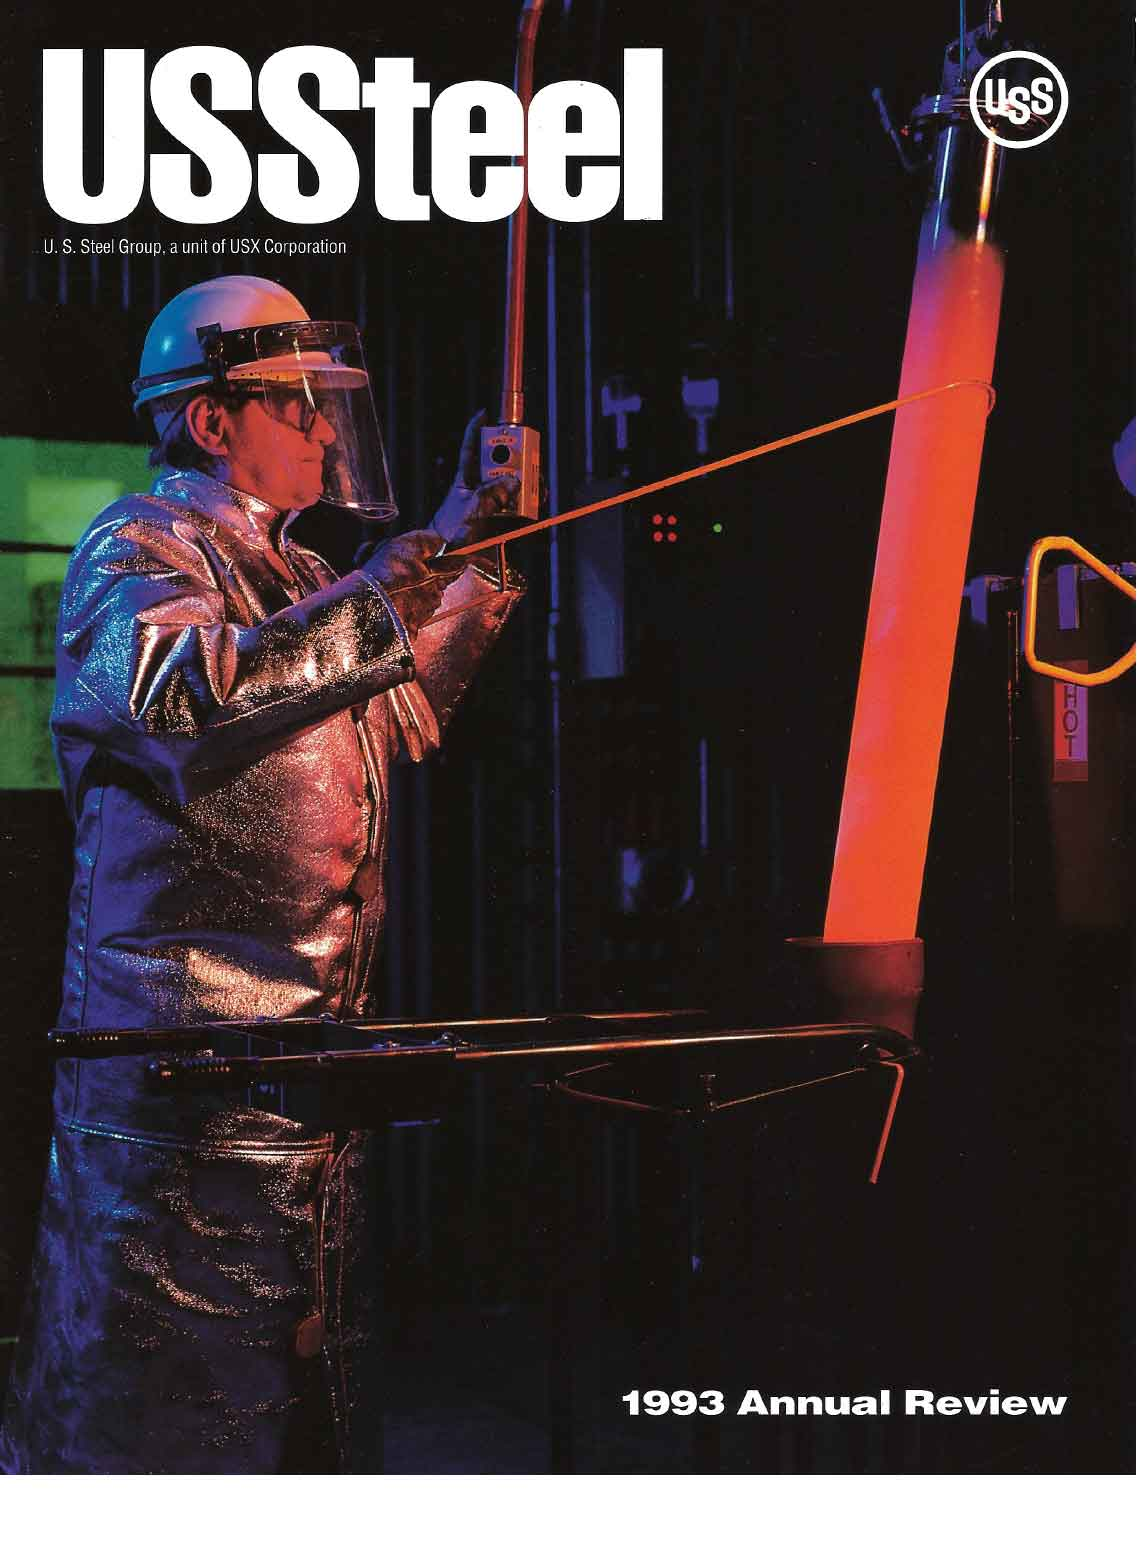 U.S. Steel 1993 Annual Review